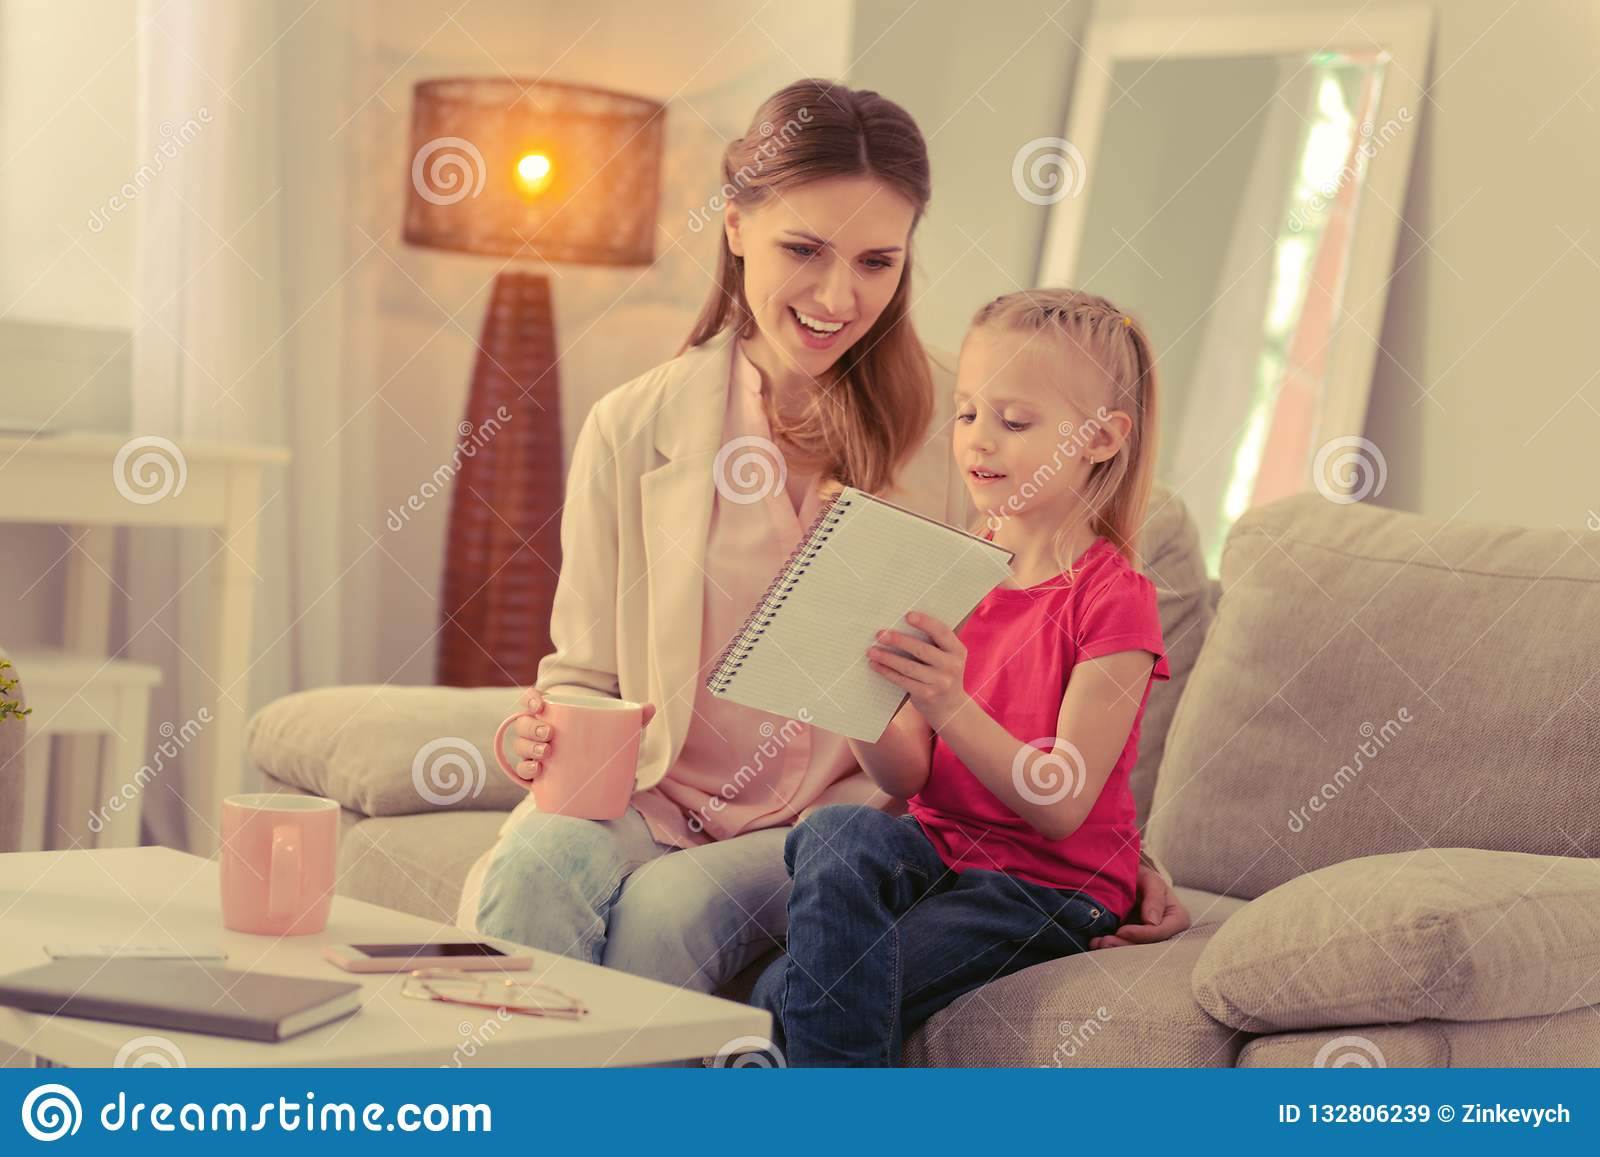 Cute showing images for mom makes photo 2